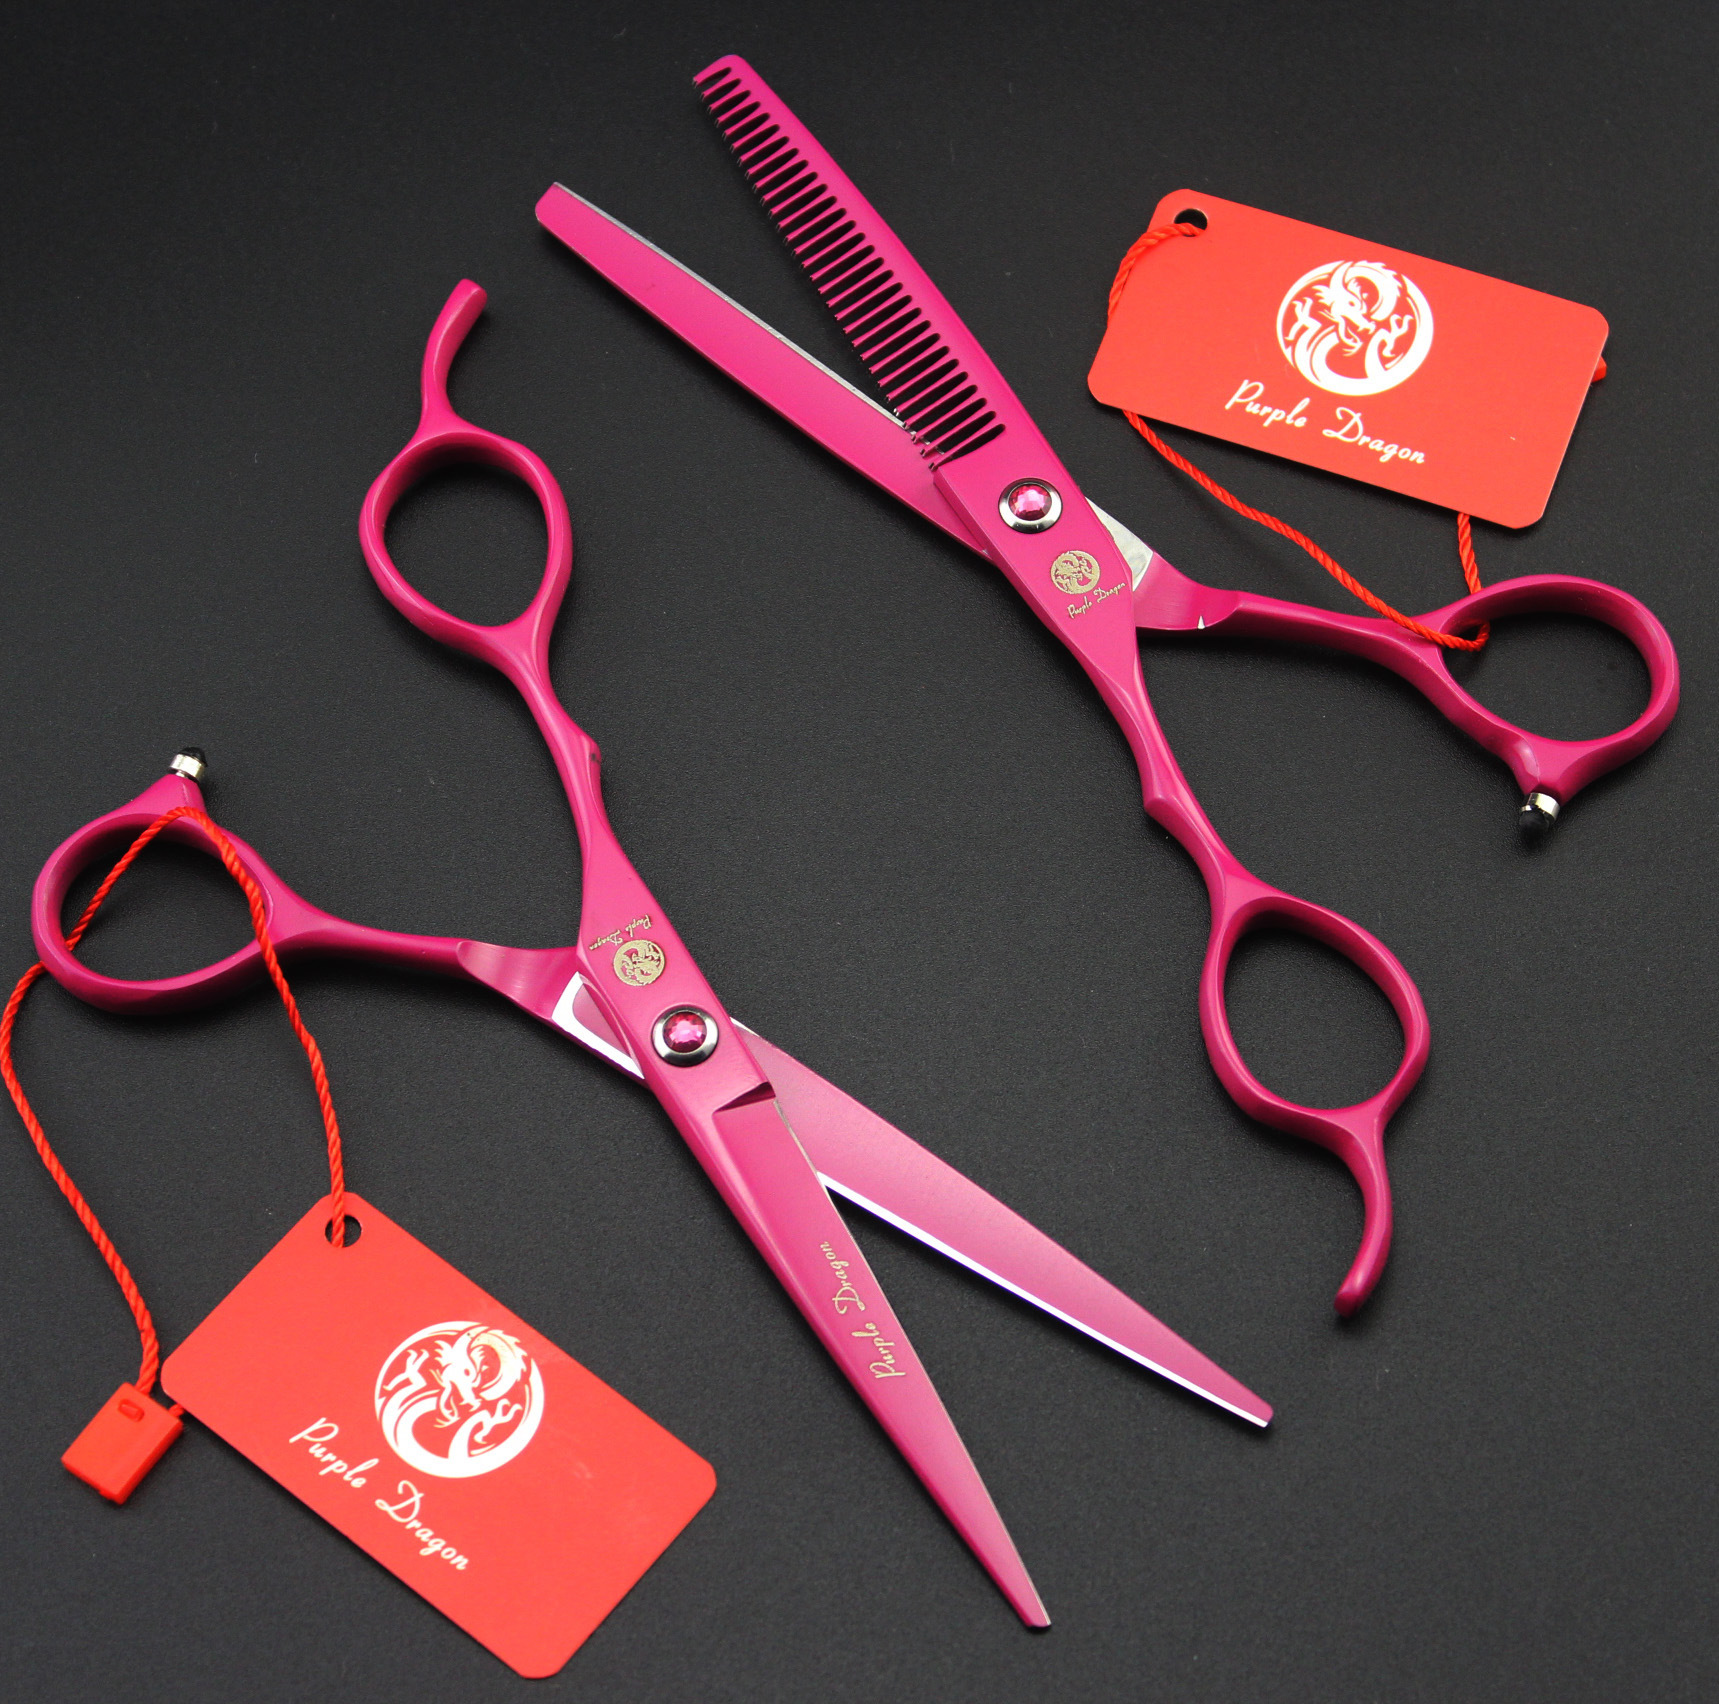 6.0  2Pcs Left Hand Shears Barber Hair Scissors Japan 440C Hairdressing 2pcs pairing left